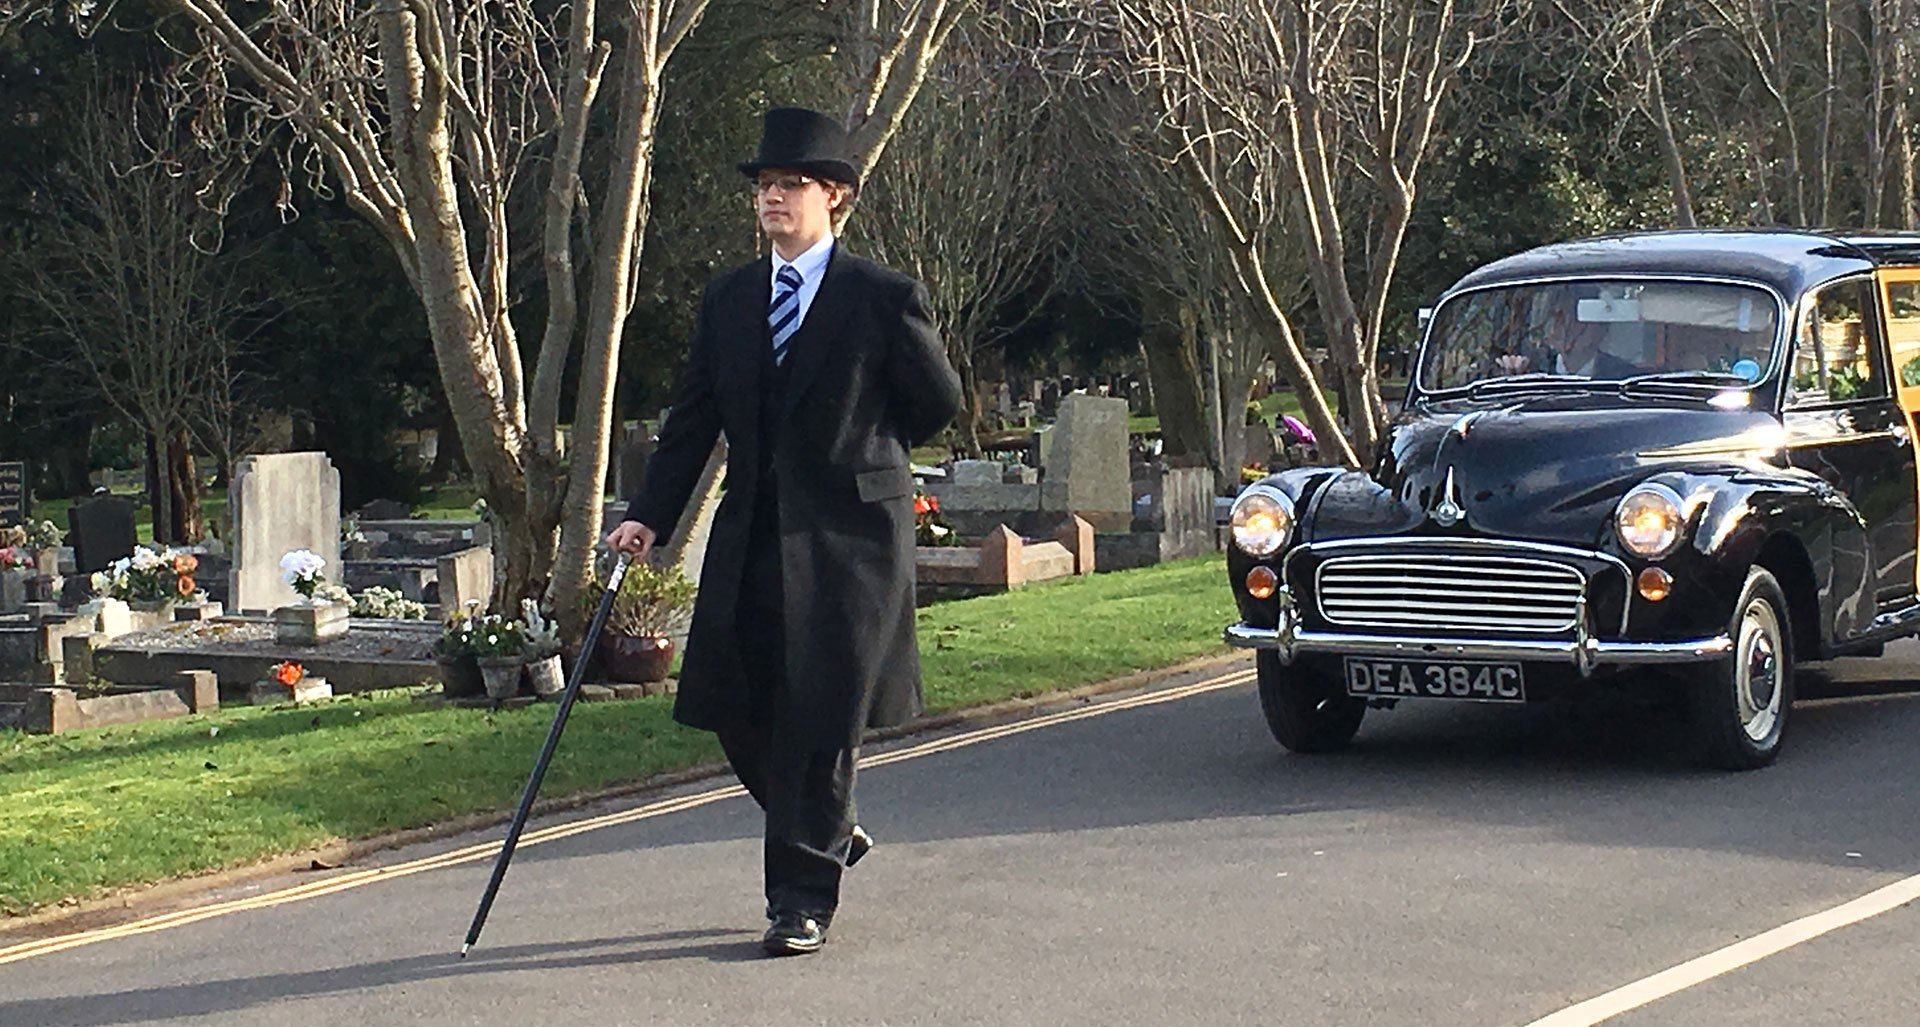 Mike Spohrer Funeral Director